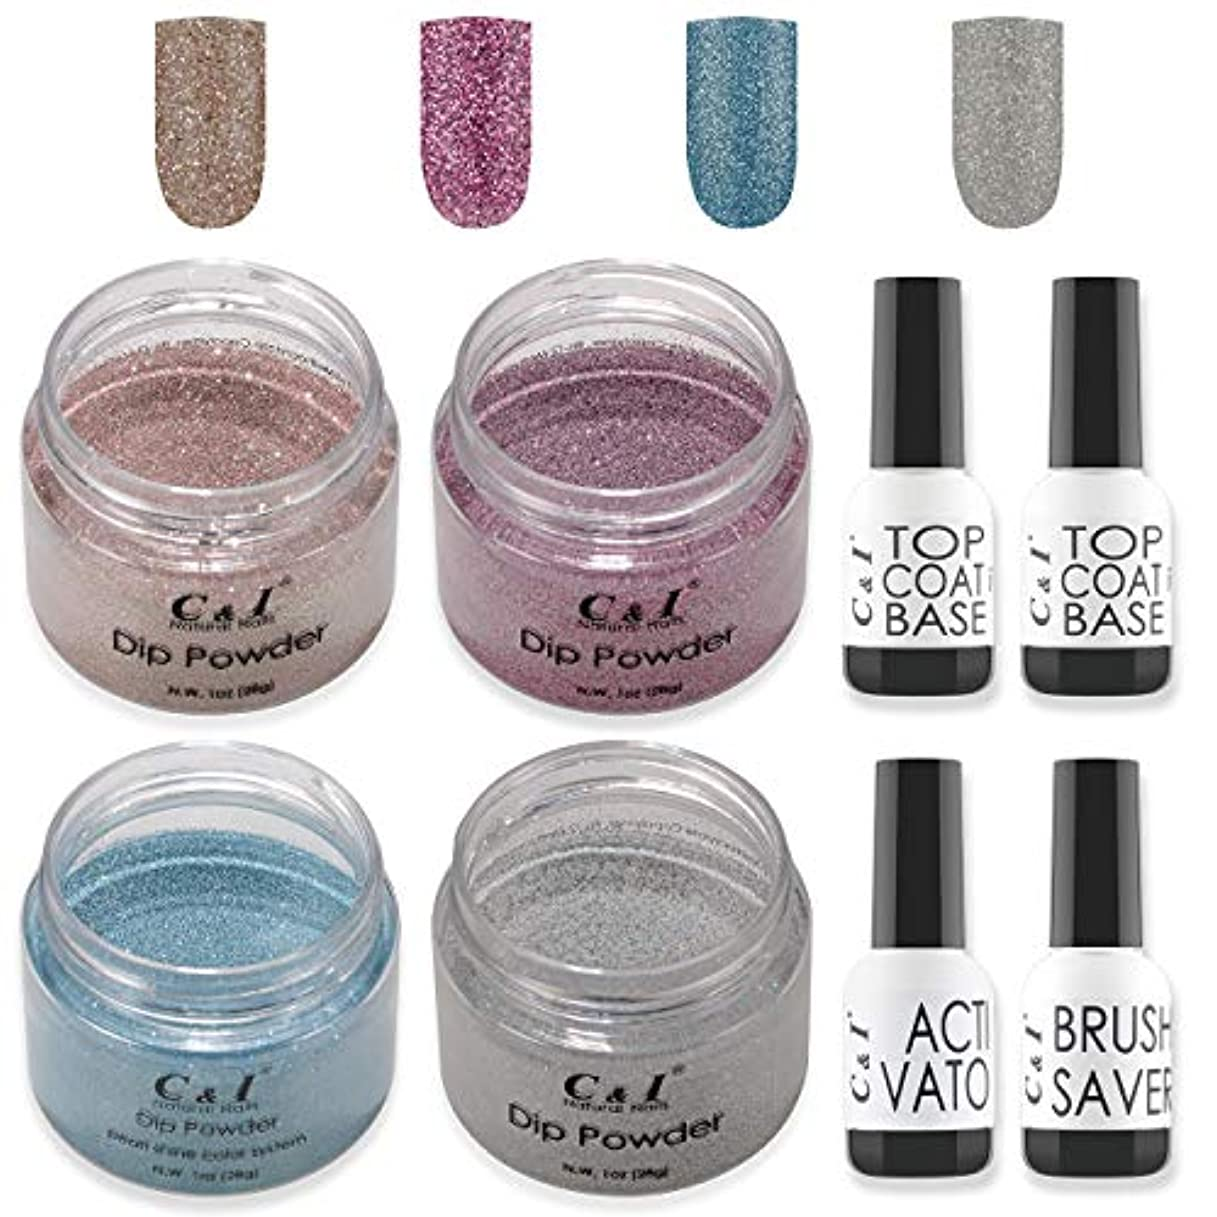 オーバーヘッド遊具上に築きますC&I Dip Powder Nail Colors & Liquids Set, 4 colors and 4 liquids, glittering nail powder, N.W. 28 g * 4 pcs &...